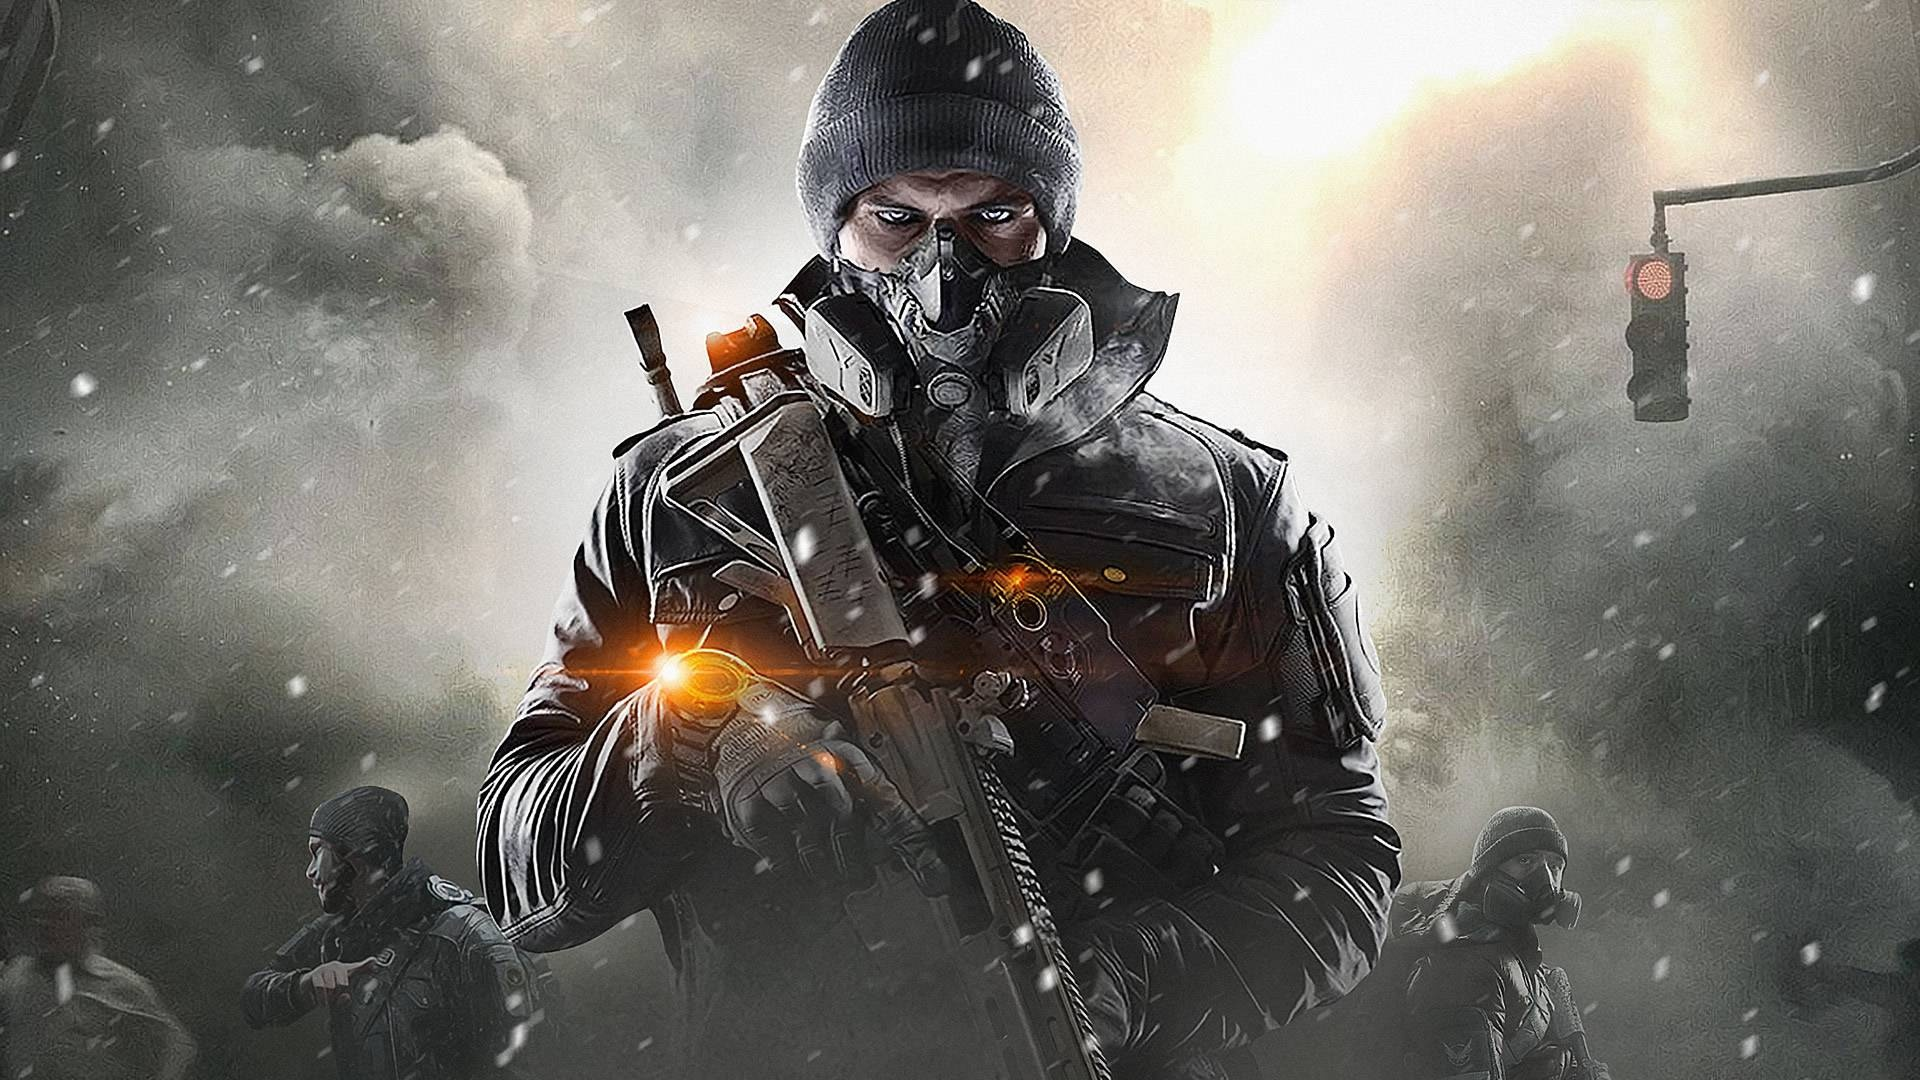 56 The Division Hd Wallpapers On Wallpapersafari